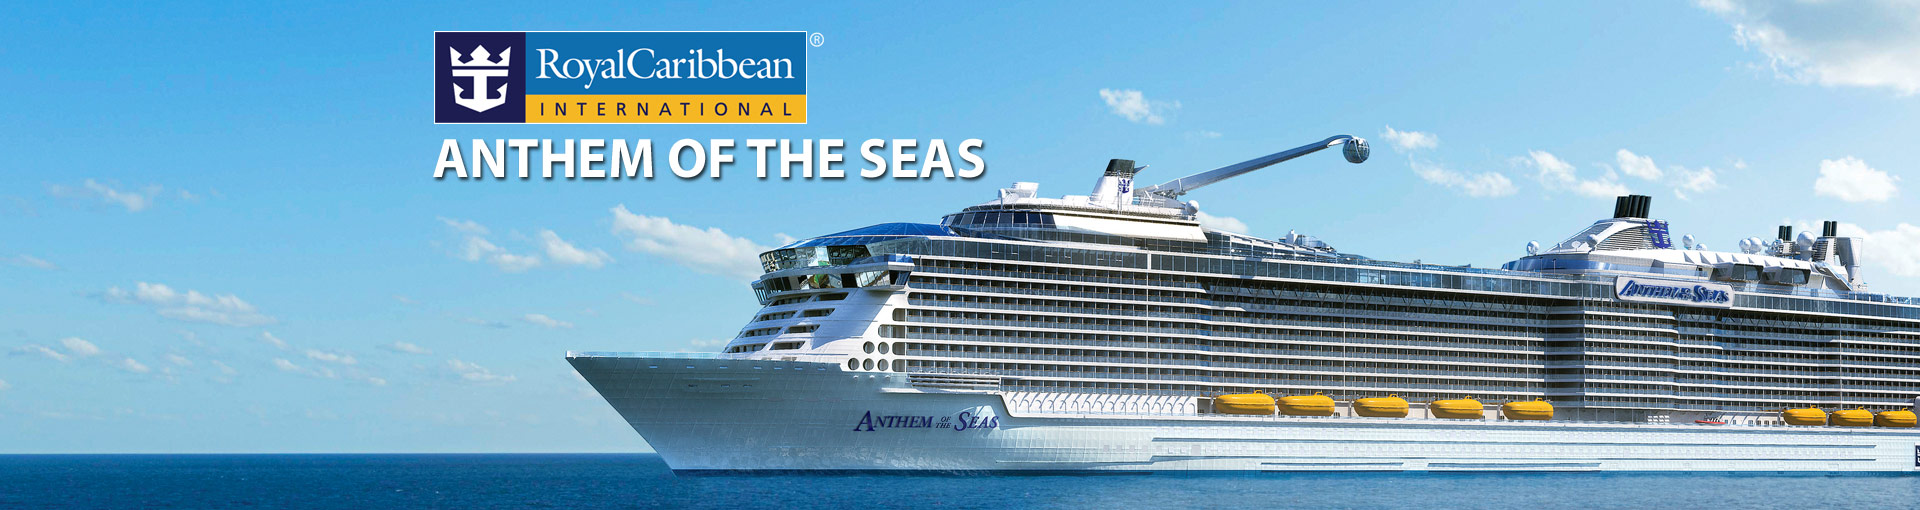 Royal Caribbean39s Anthem Of The Seas Cruise Ship 2017 And